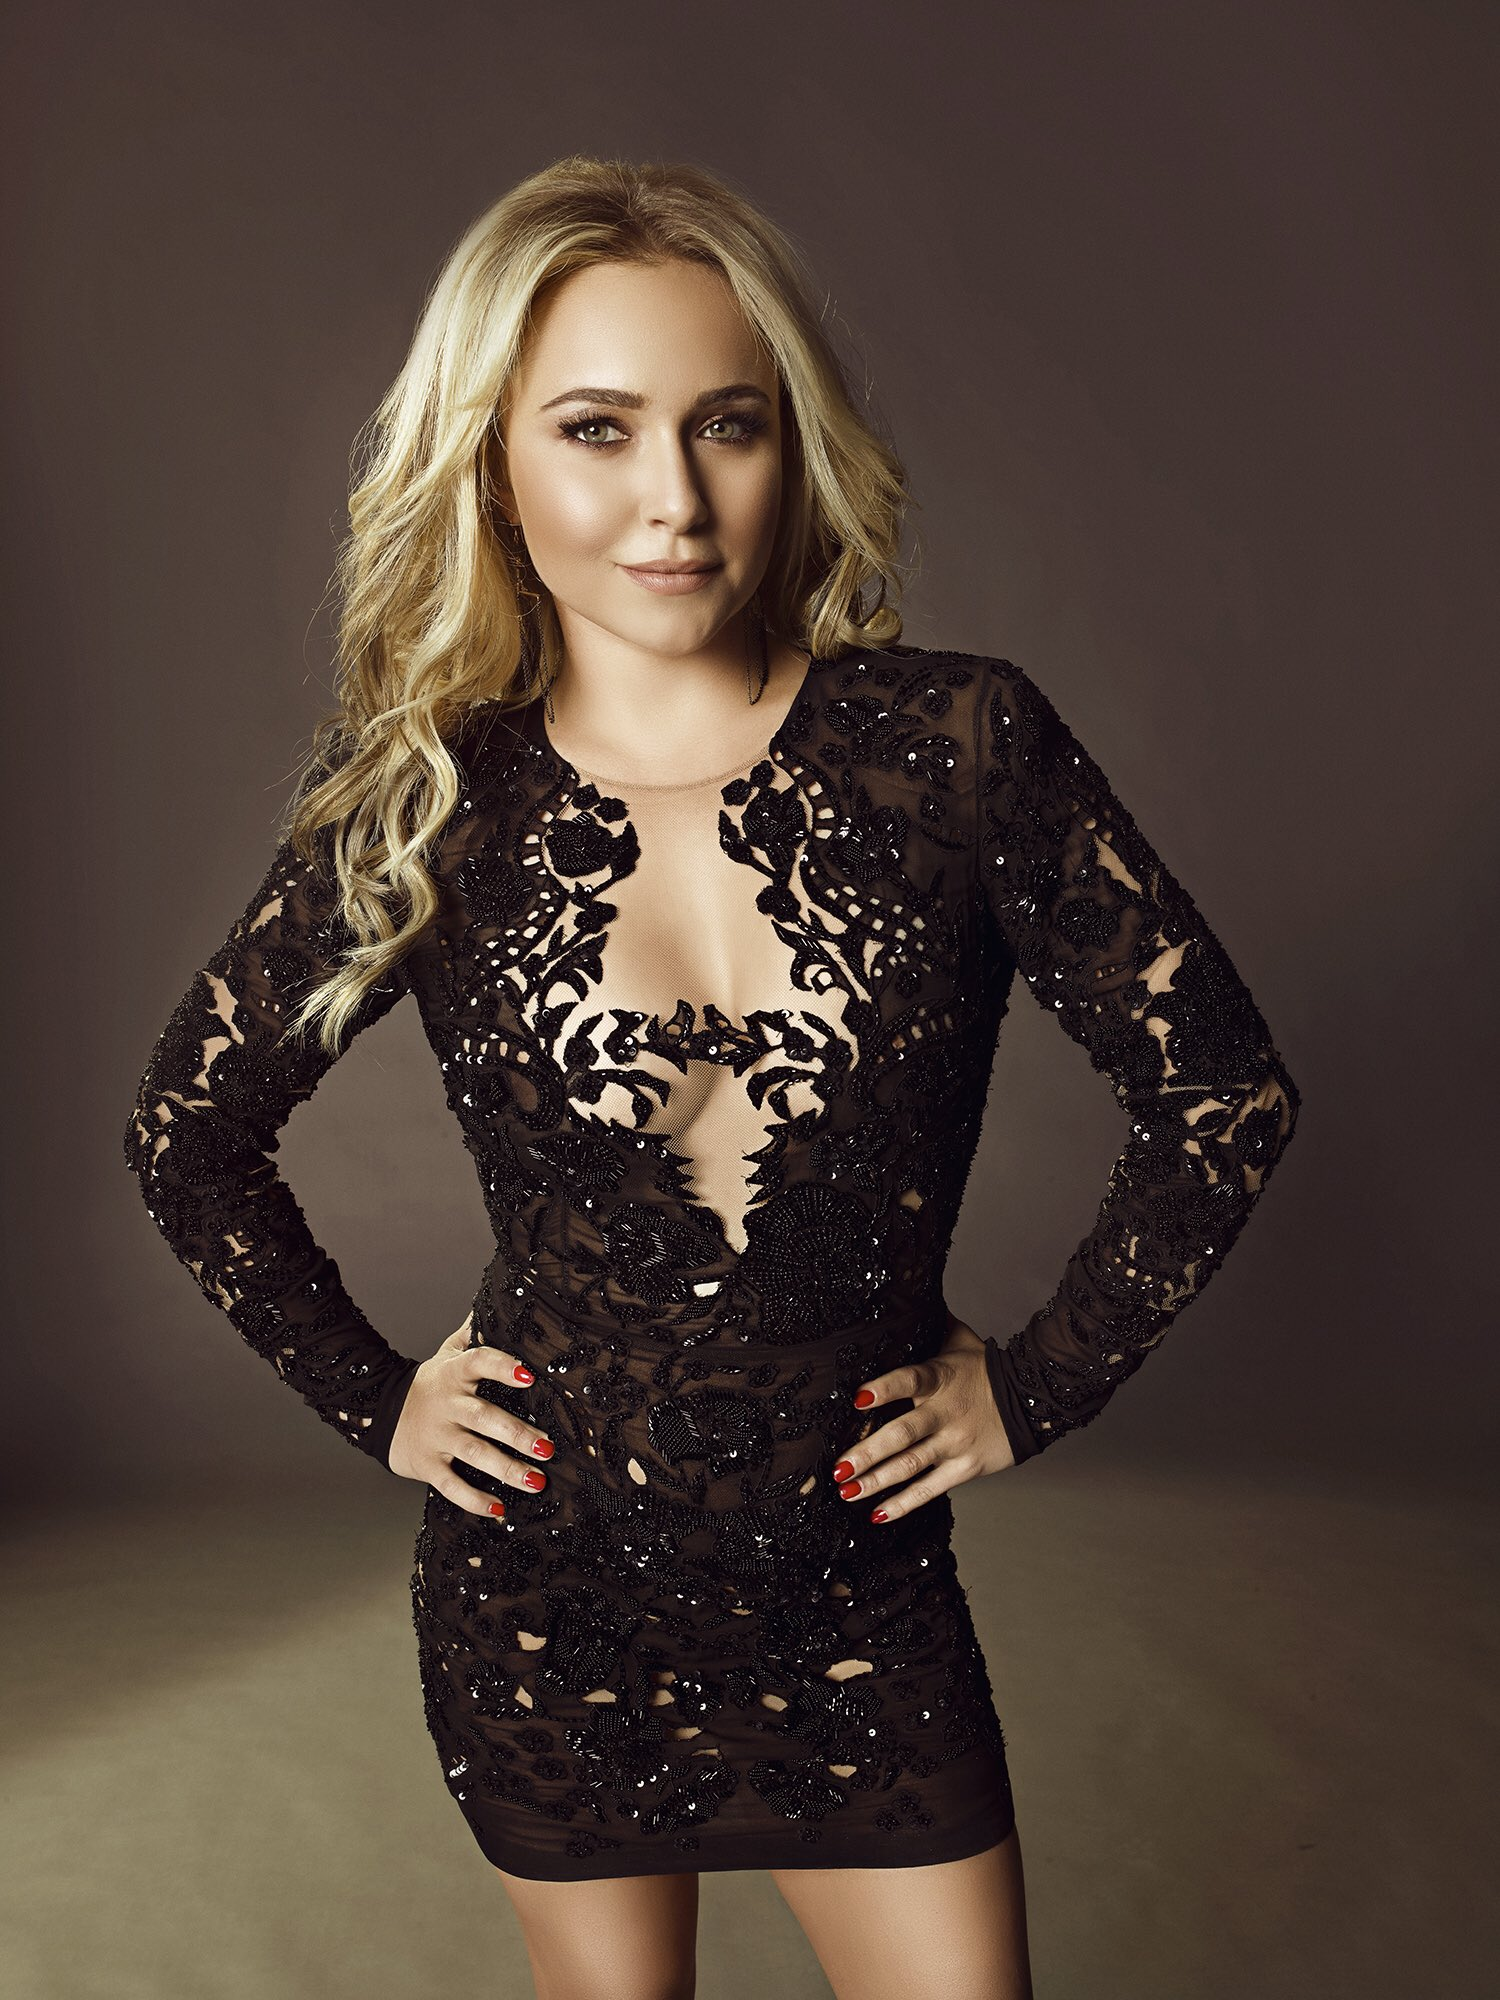 Hayden panettiere nashville season 1 collection - 3 part 6